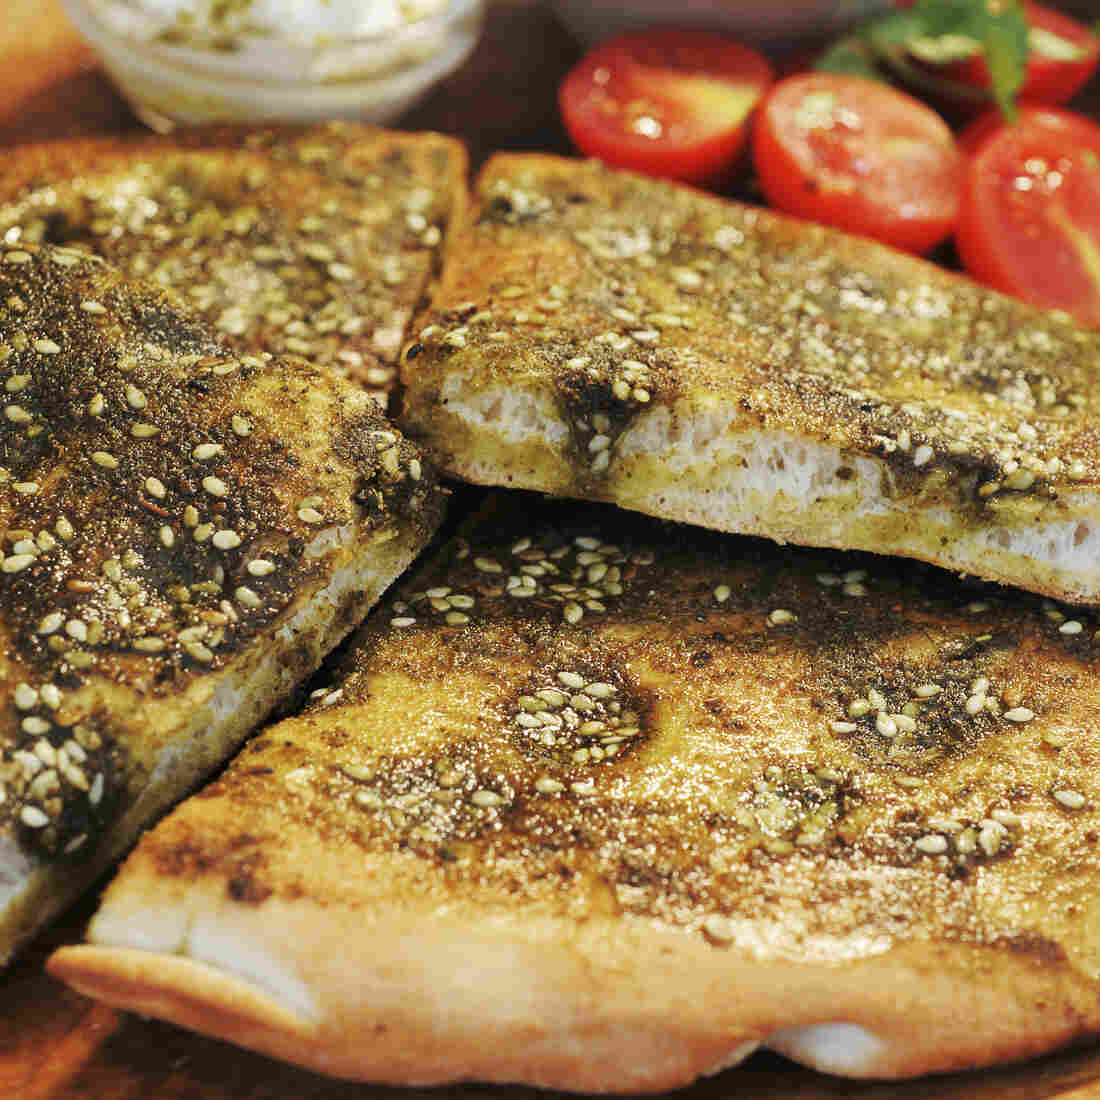 Lebanese bread topped with za'atar, a spice mix ubiquitous in the Middle East.